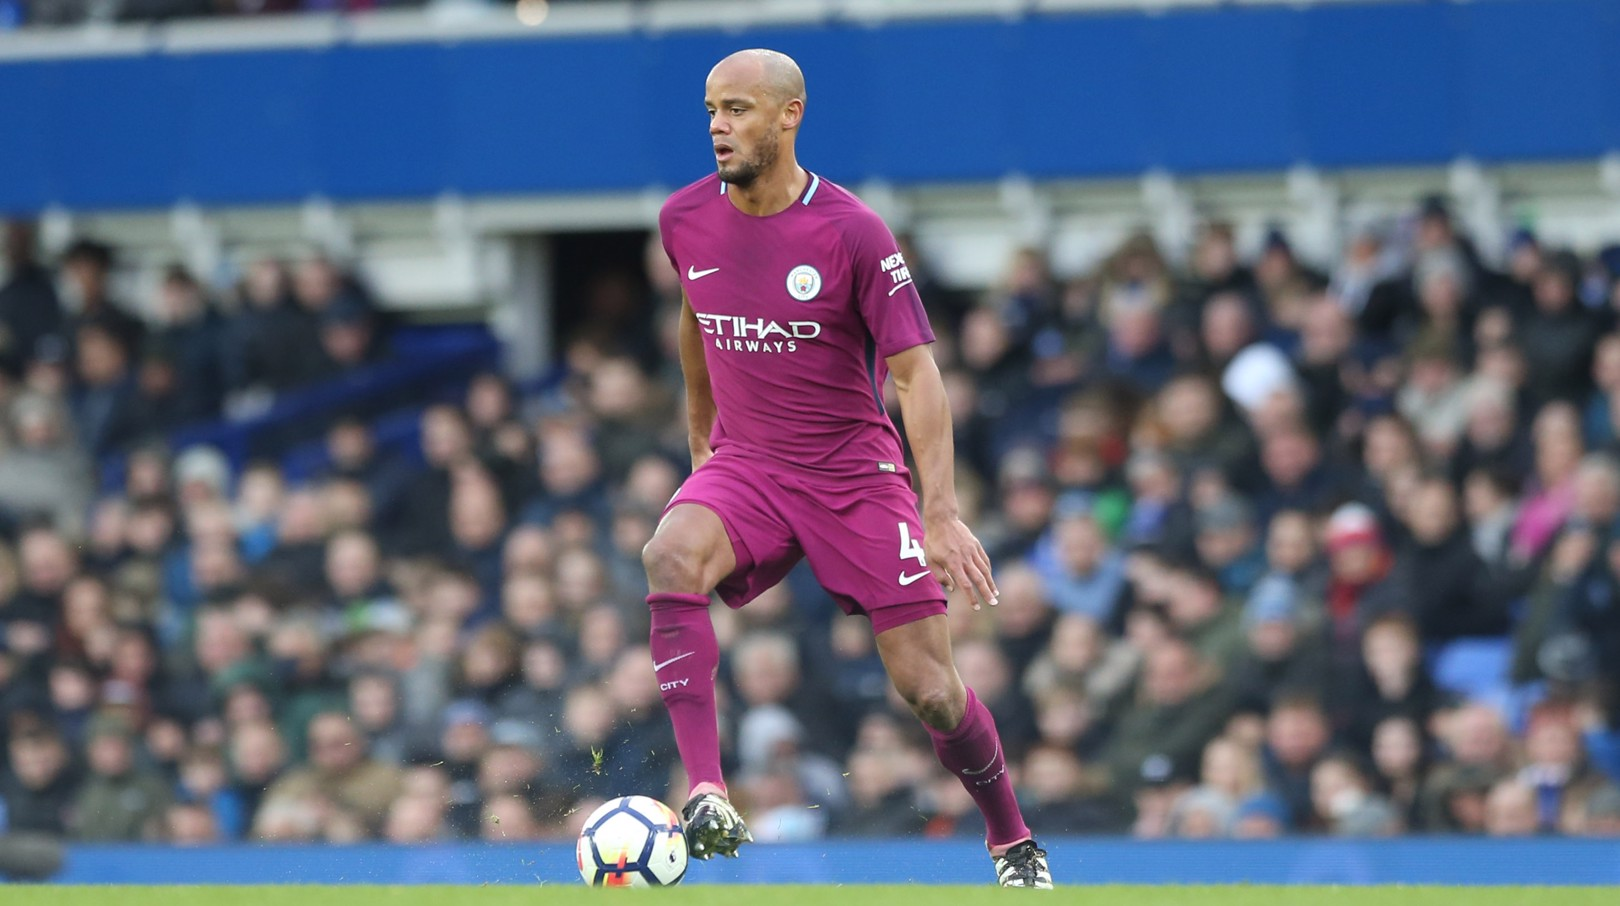 LEADER: Vincent Kompany on the ball.